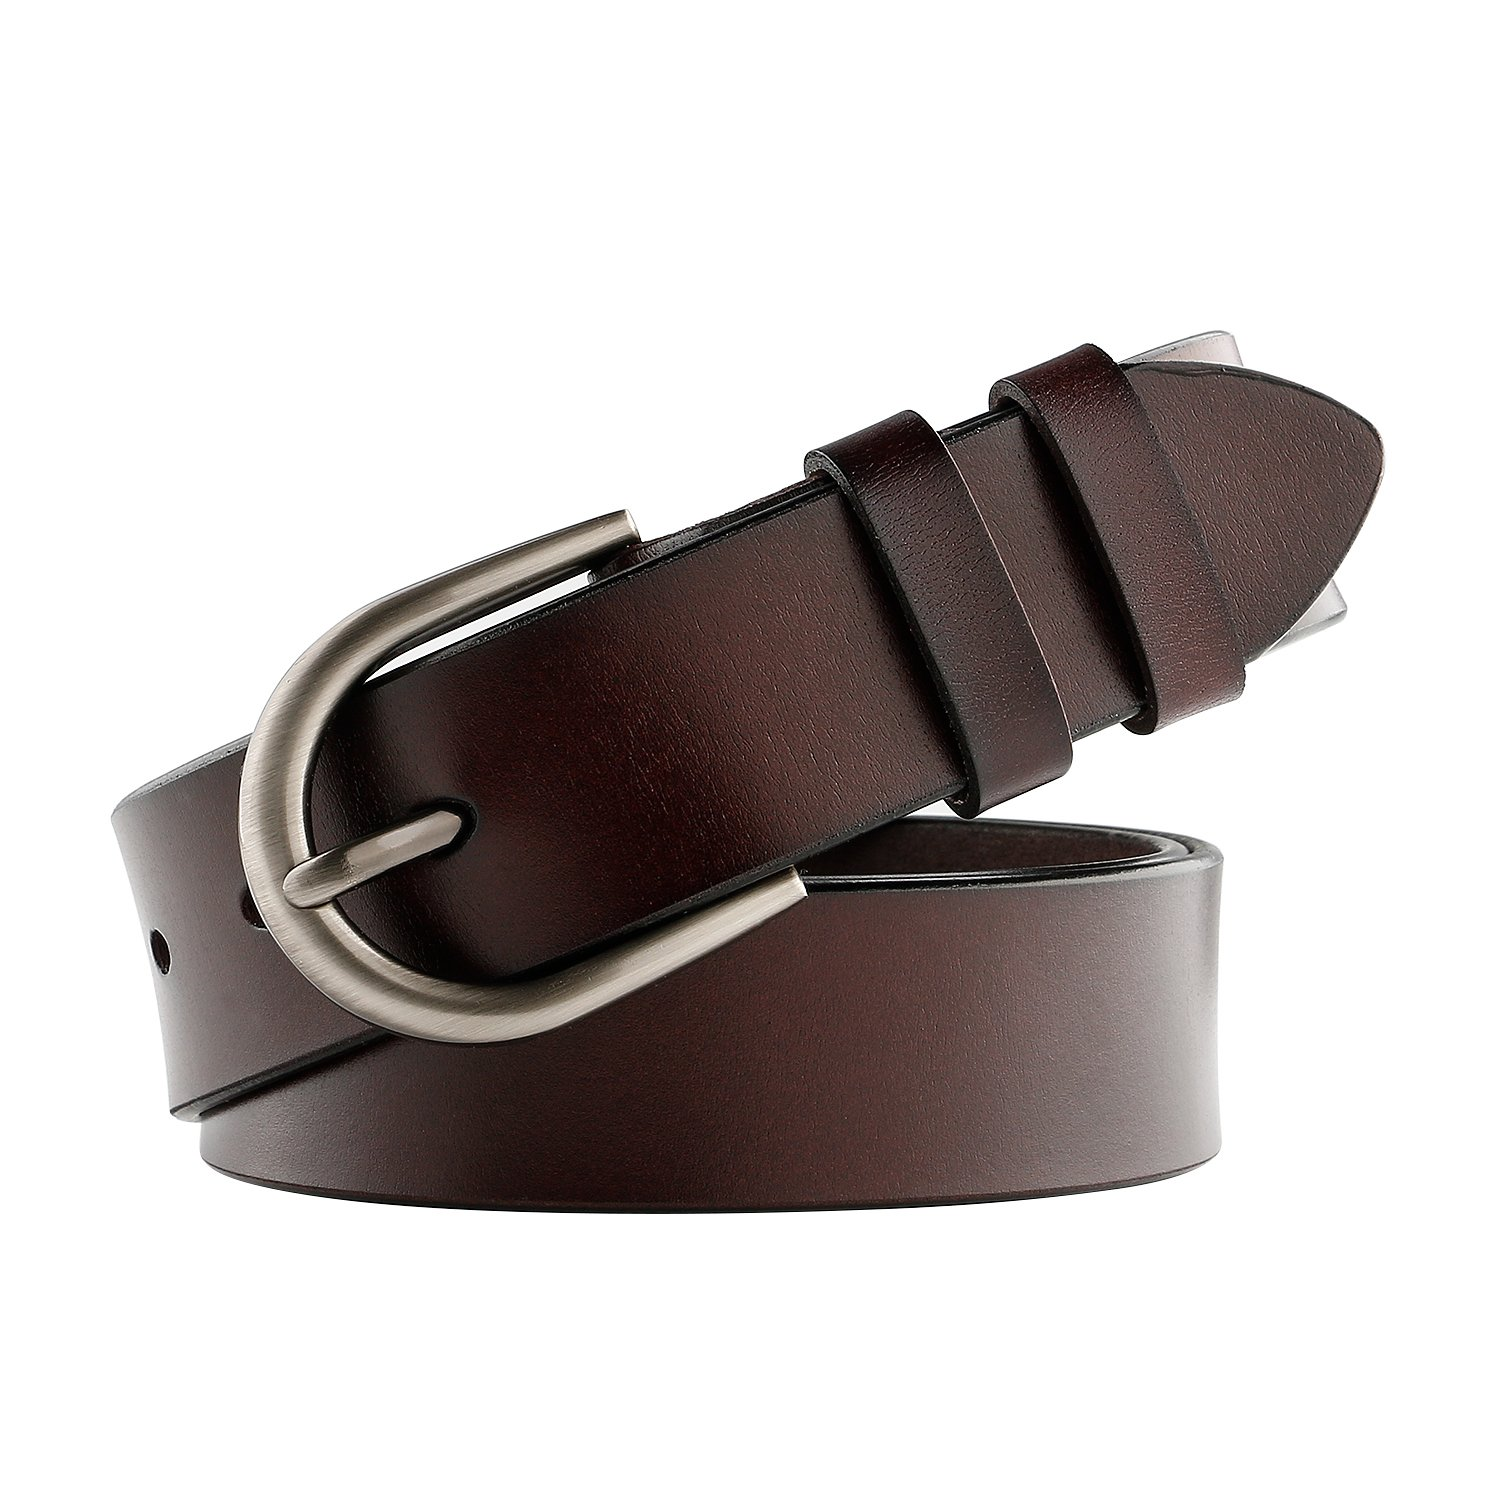 WHIPPY Women Belt Genuine Leather Belt for Jeans with Brushed Alloy Buckle Brown Belt Up to 42'', 1.3'' Wide